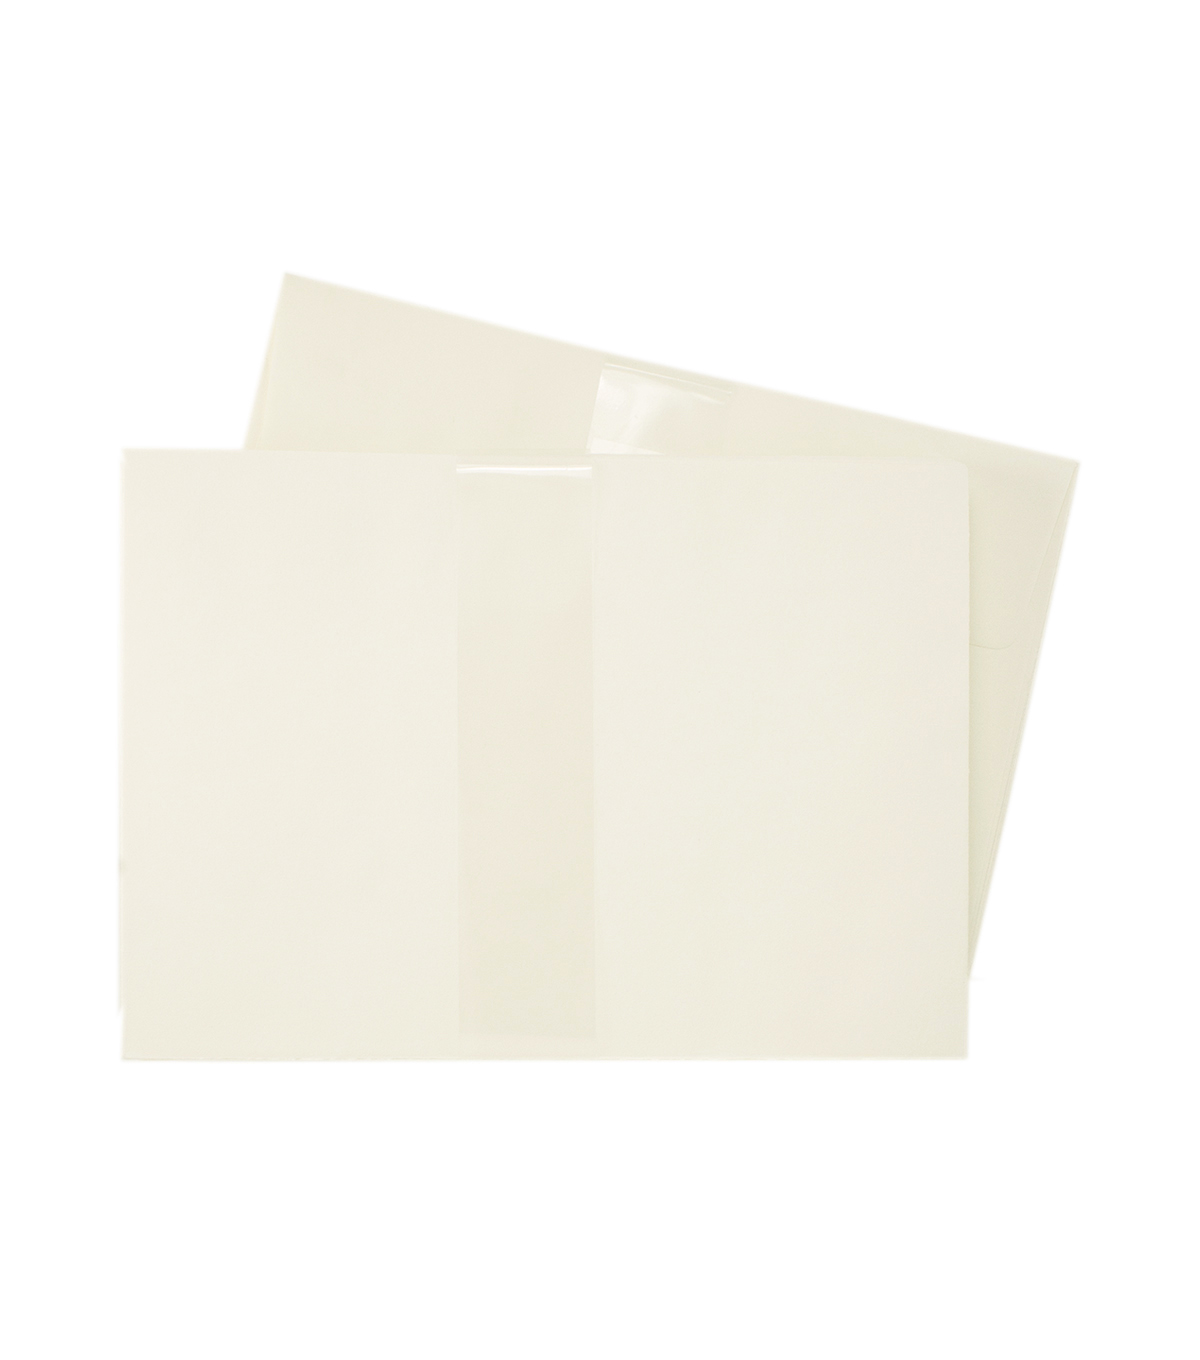 Park Lane A7 Envelopes-Ivory